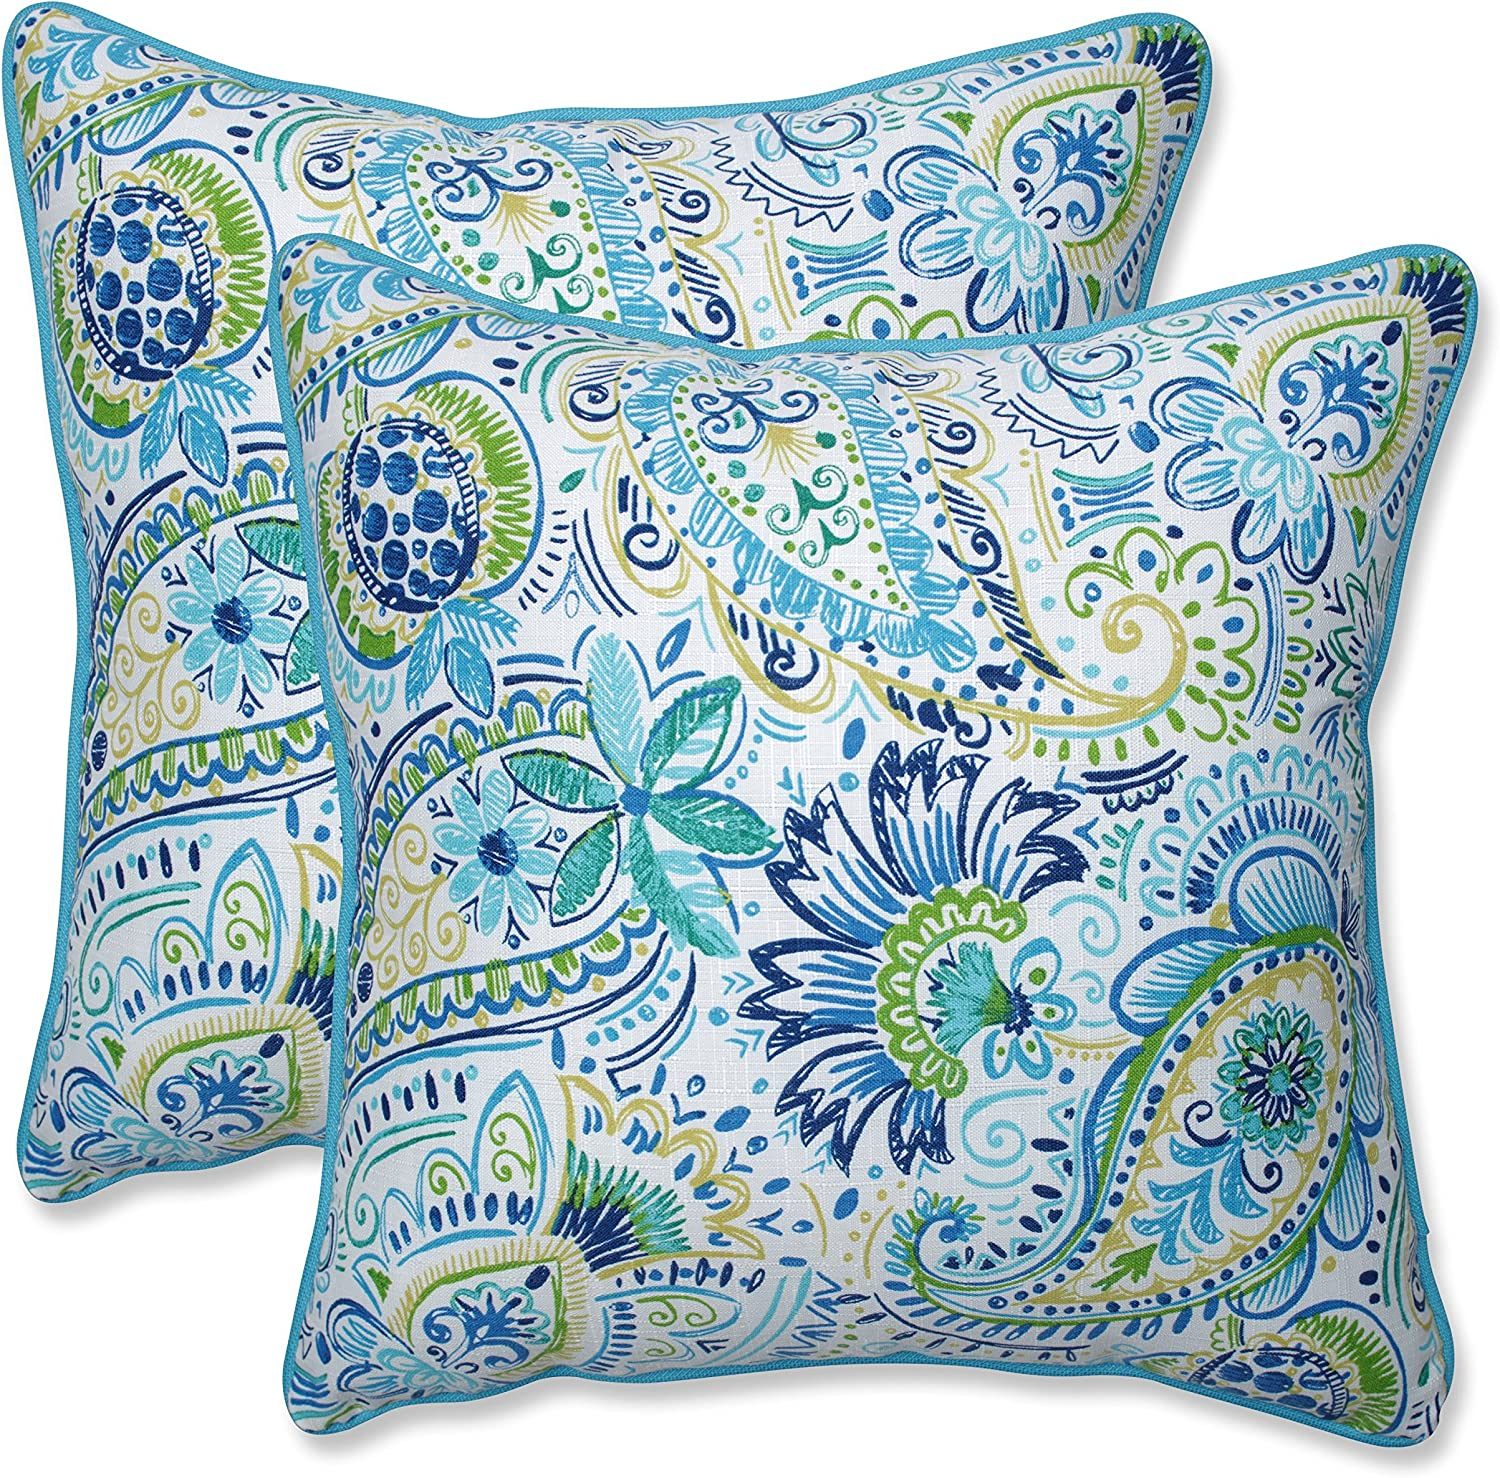 Pillow Perfect Outdoor | Indoor Gilford Baltic 18.5-inch Throw Pillow (Set of 2), 2 Piece